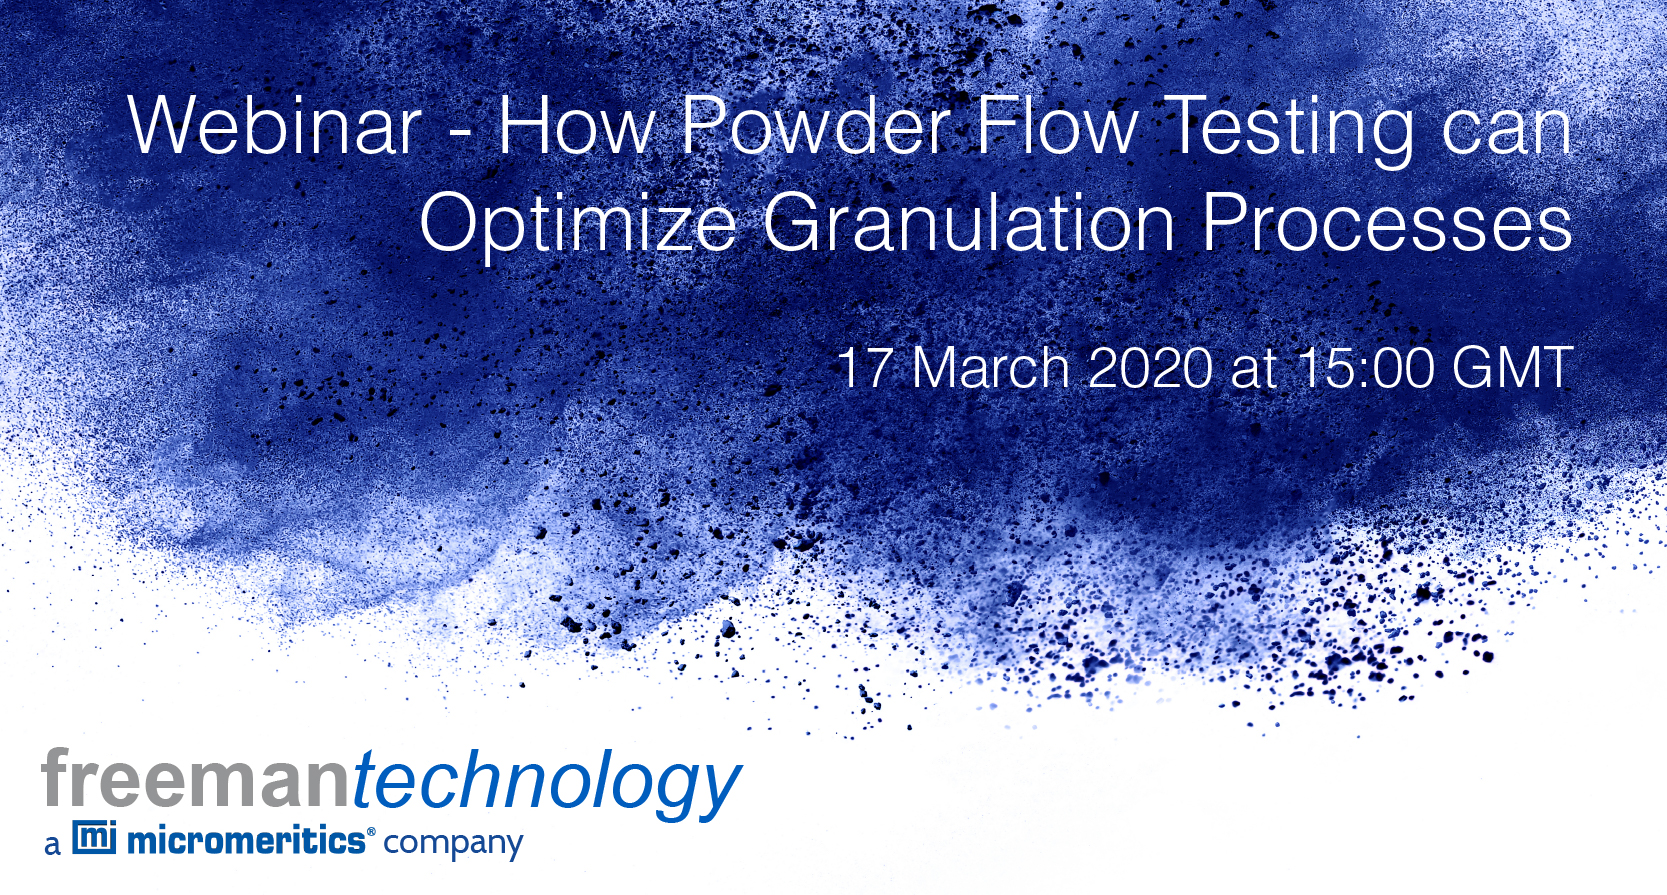 Webinar - How powder flow testing can optimize granulation processes